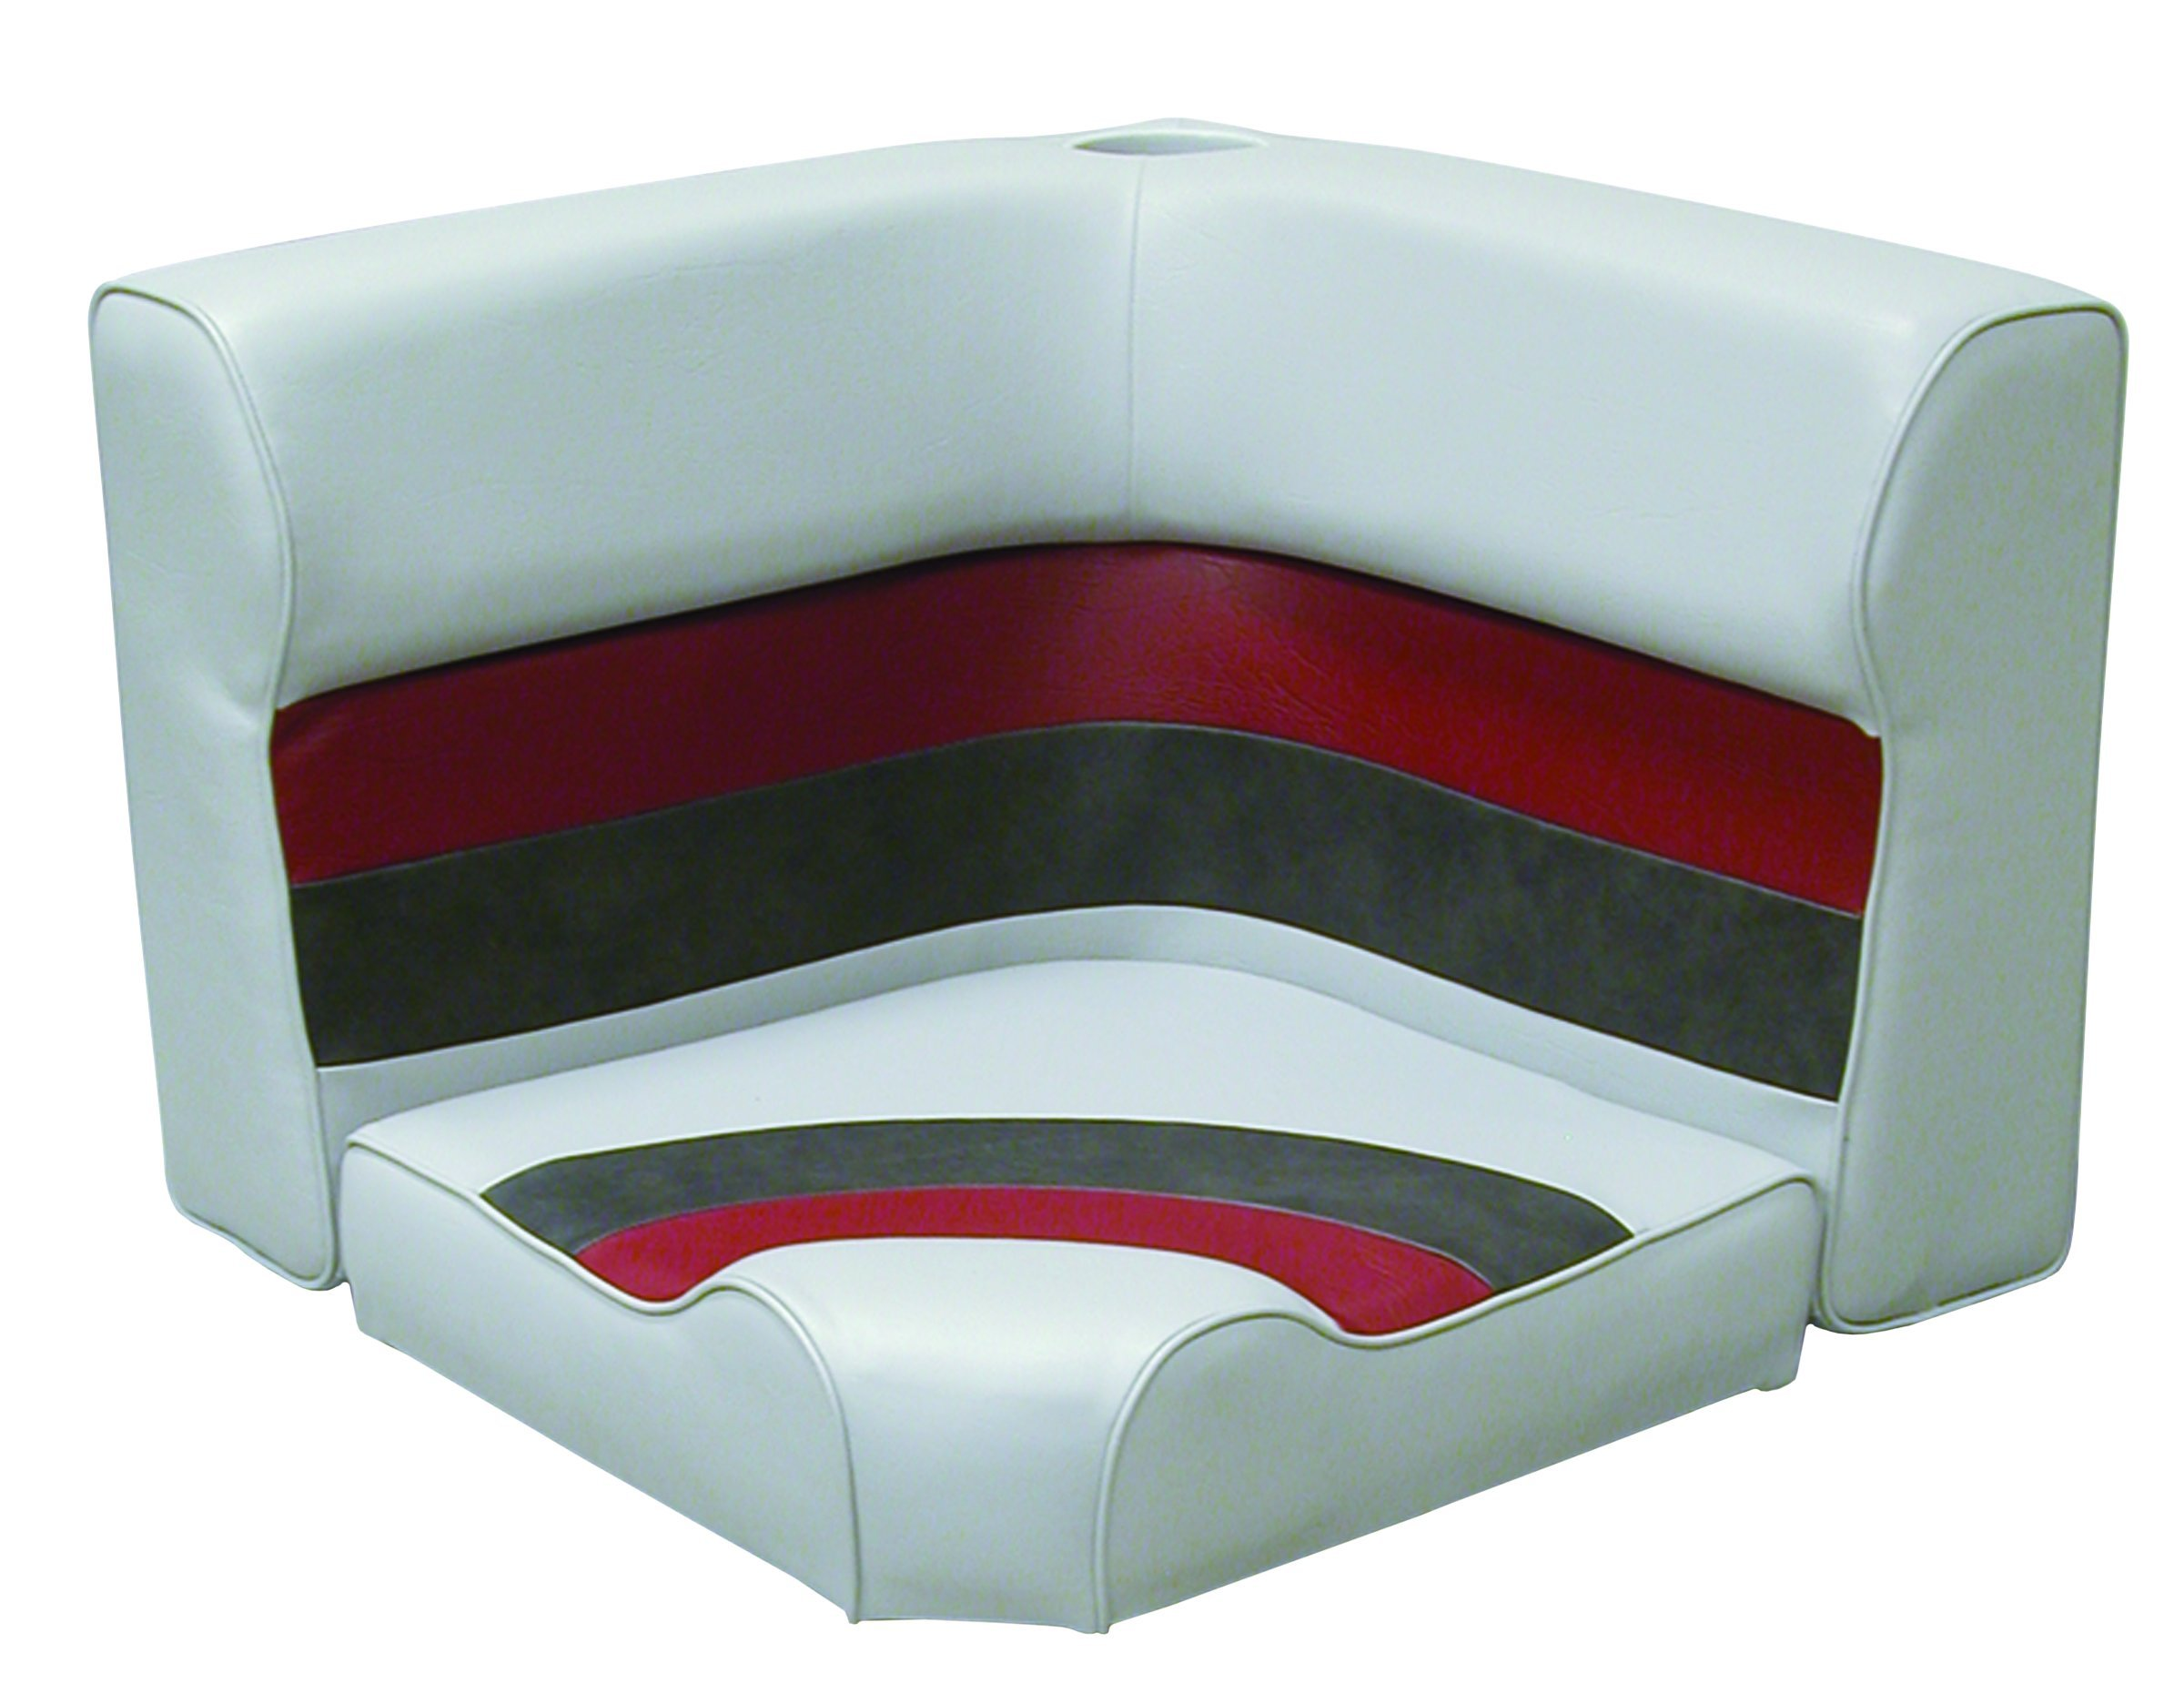 Wise 8WD133-1012 Pontoon Corner Radius Section Seat Cushion Only, Gray/Red/Charcoal, Medium